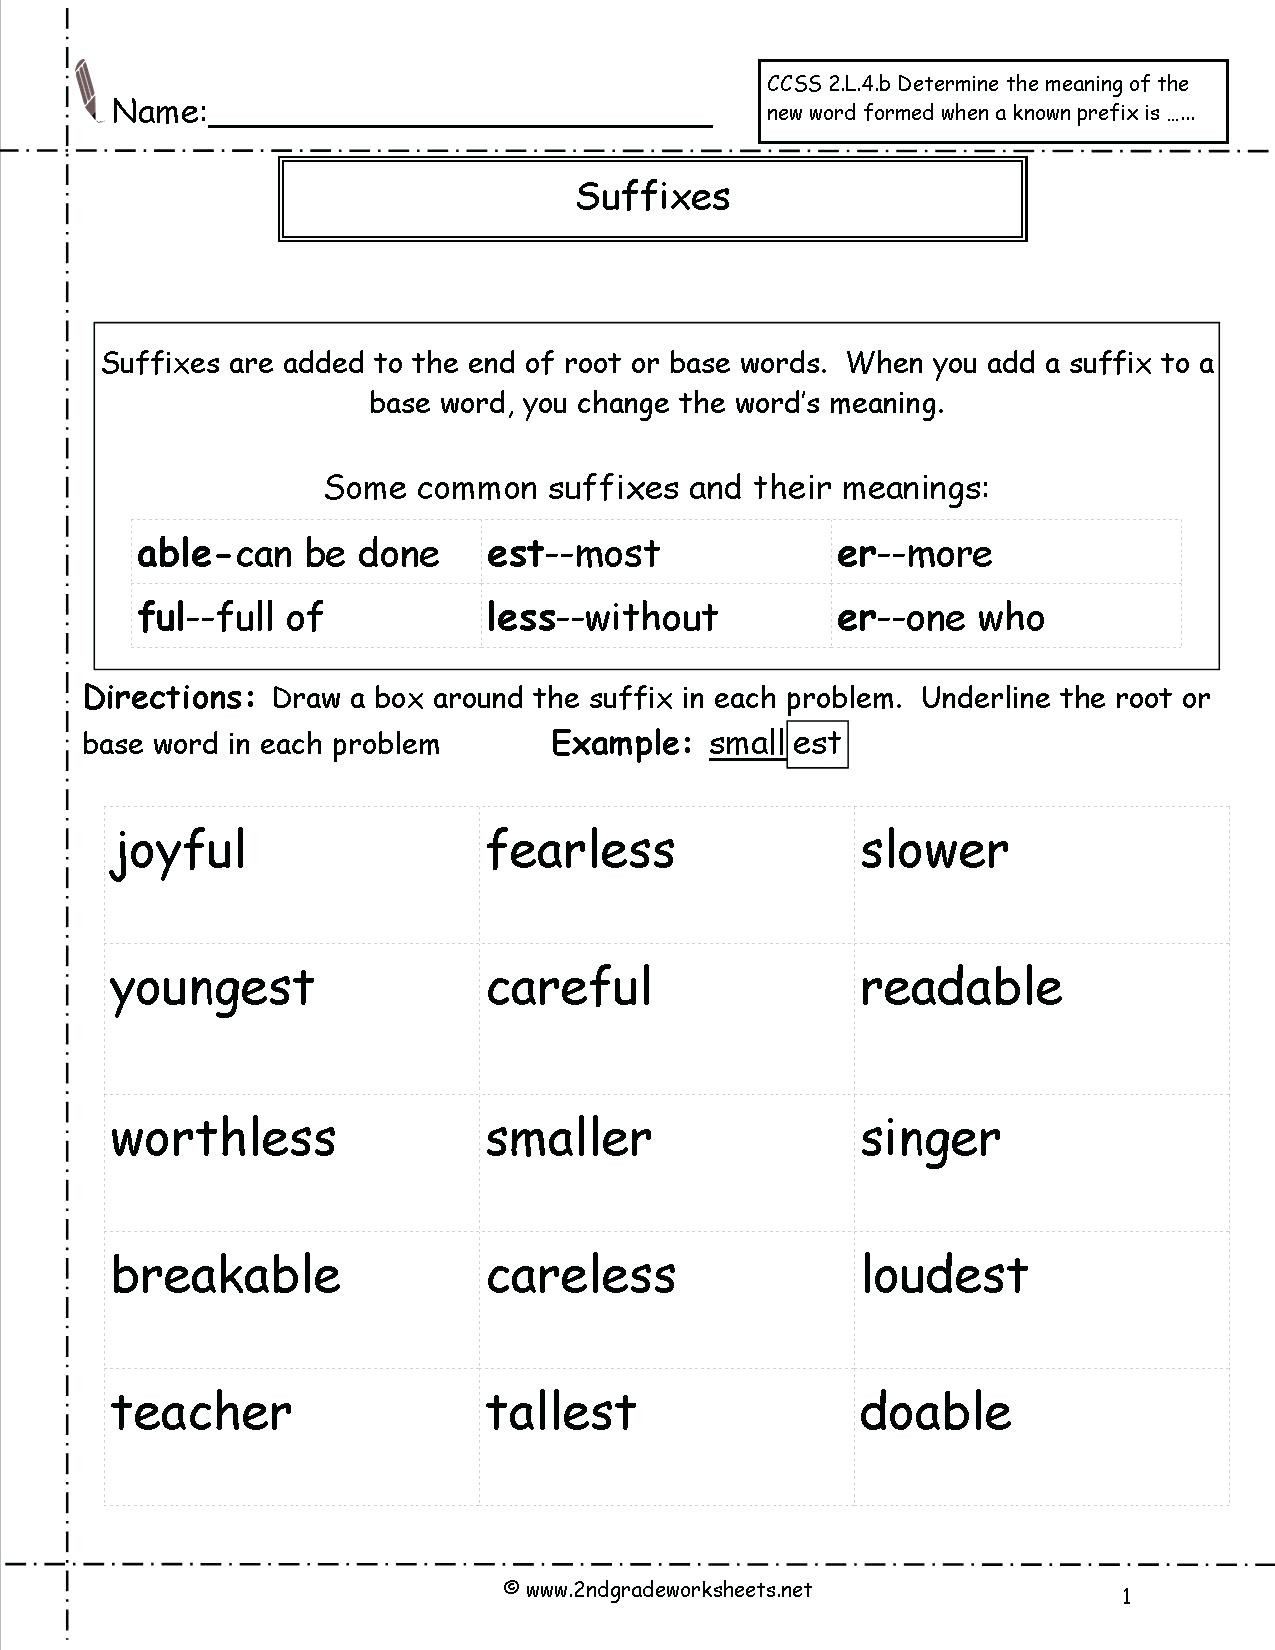 Suffixes Worksheet 3rd Grade 3rd Grade Prefixes and Suffixes Worksheets Second Grade Nest